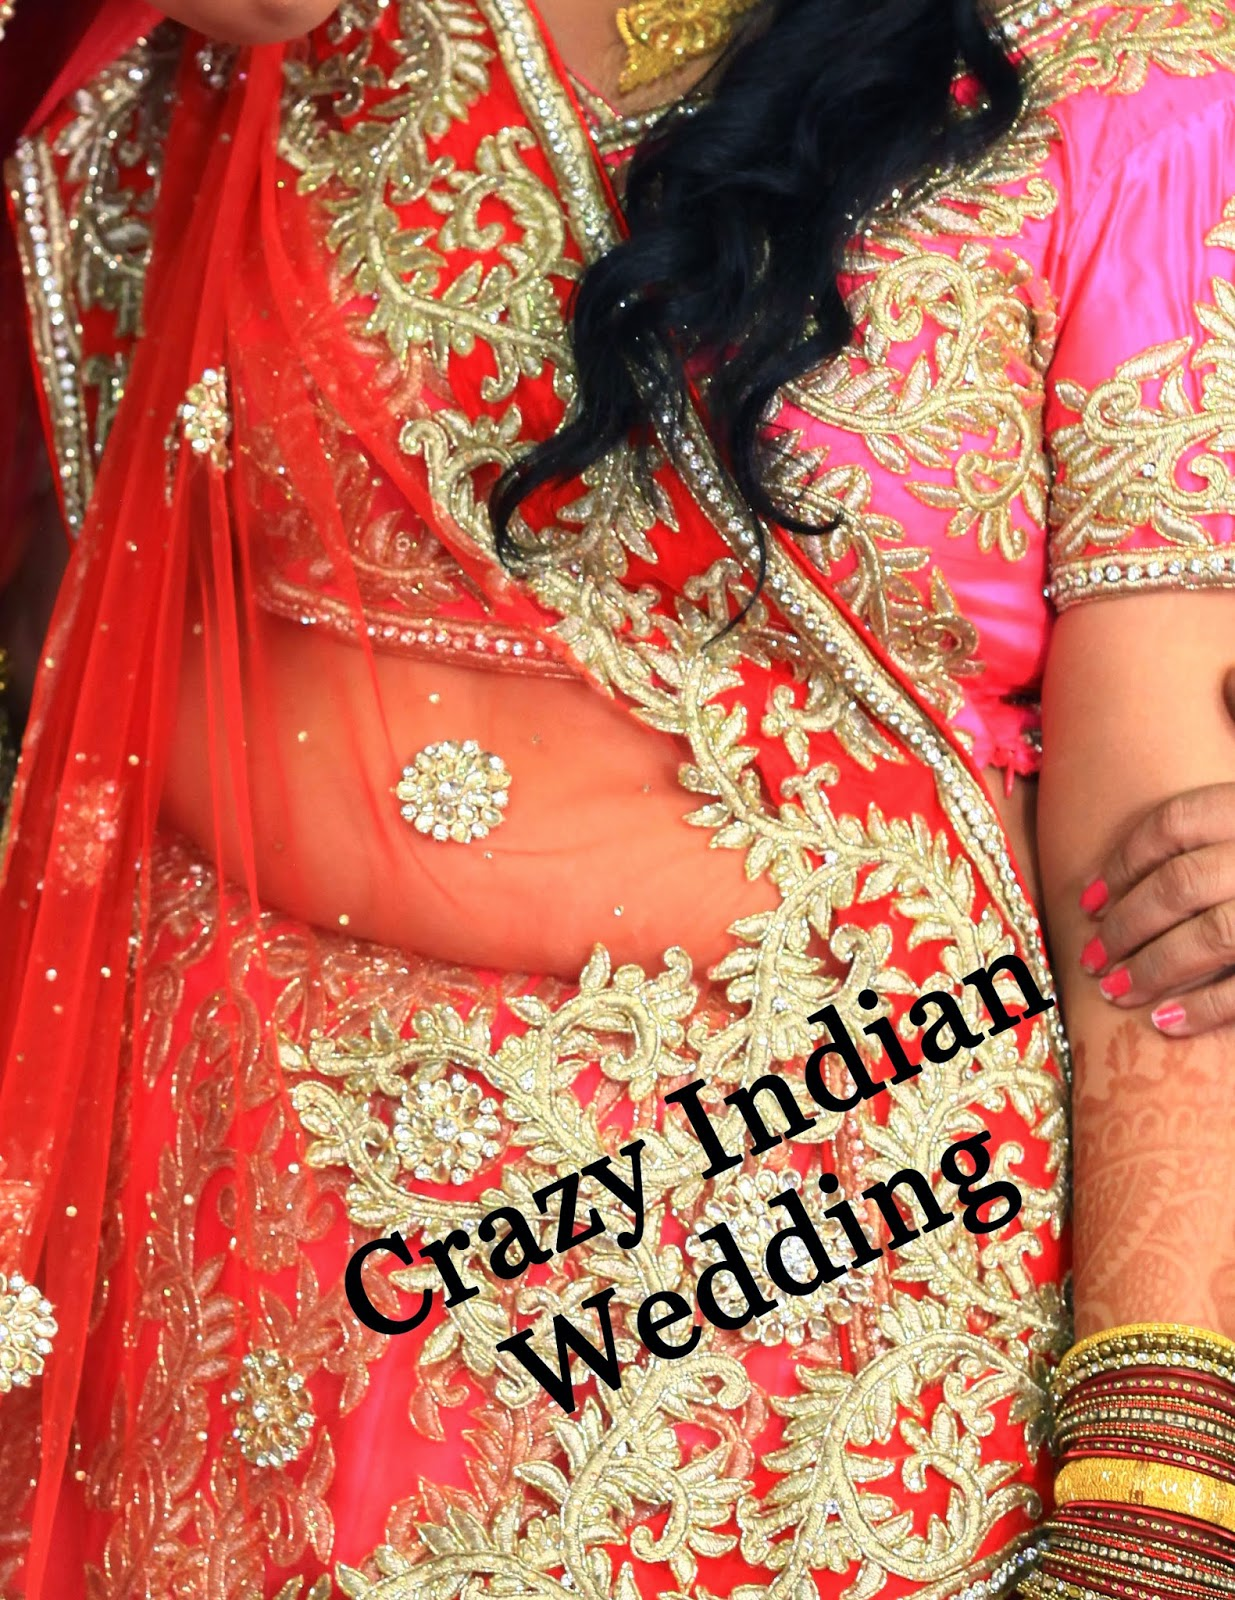 1699bb30264c So make sure the lehenga is of your size and not loose! So when you zip it  up, it should fit you perfectly.